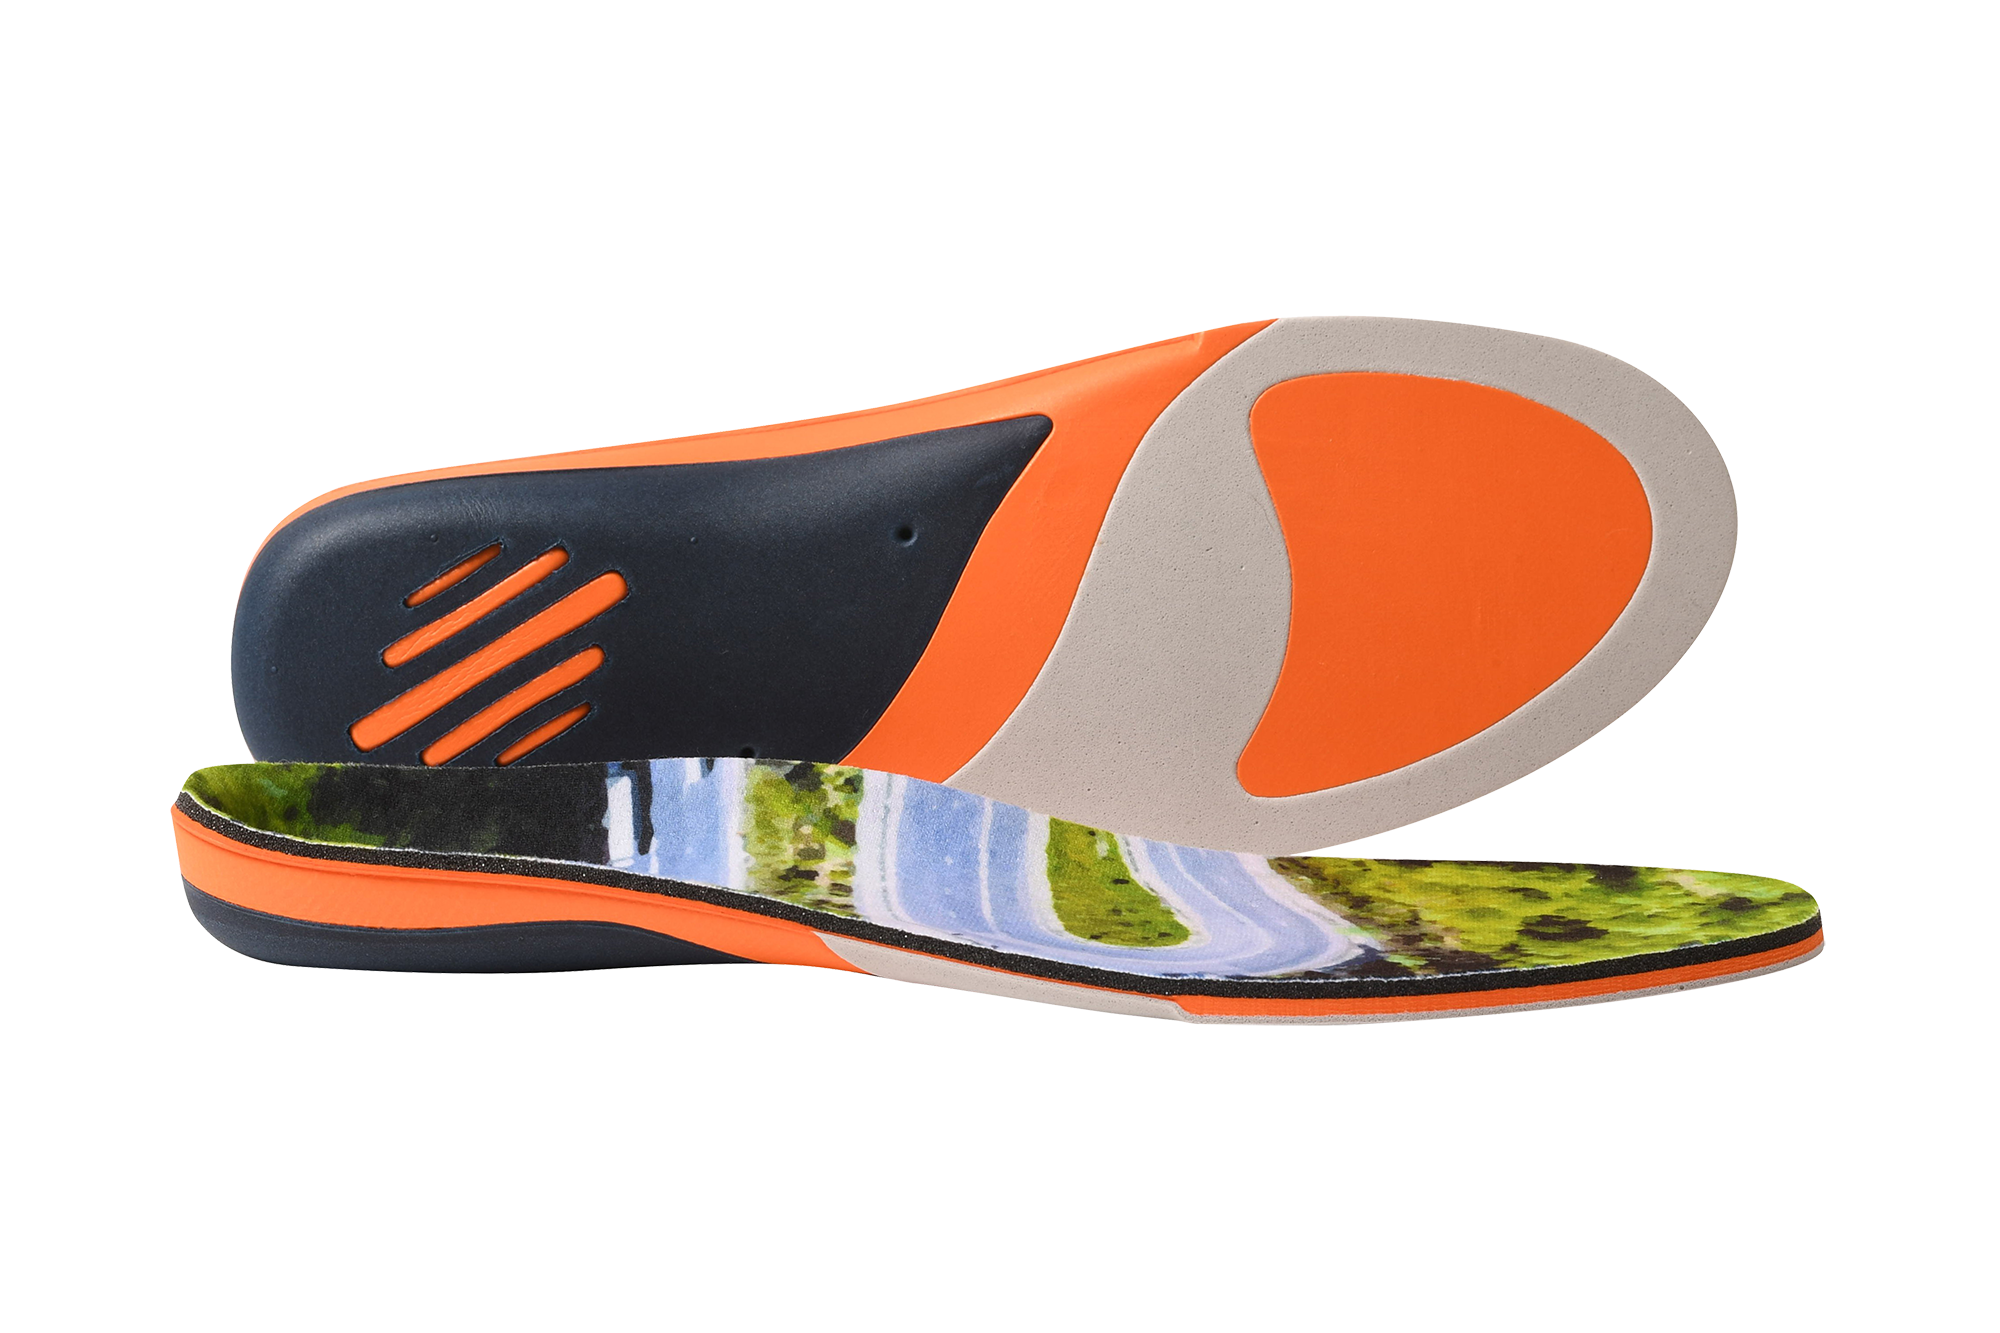 Insoles for Men's Dress Shoes with Memory Foam